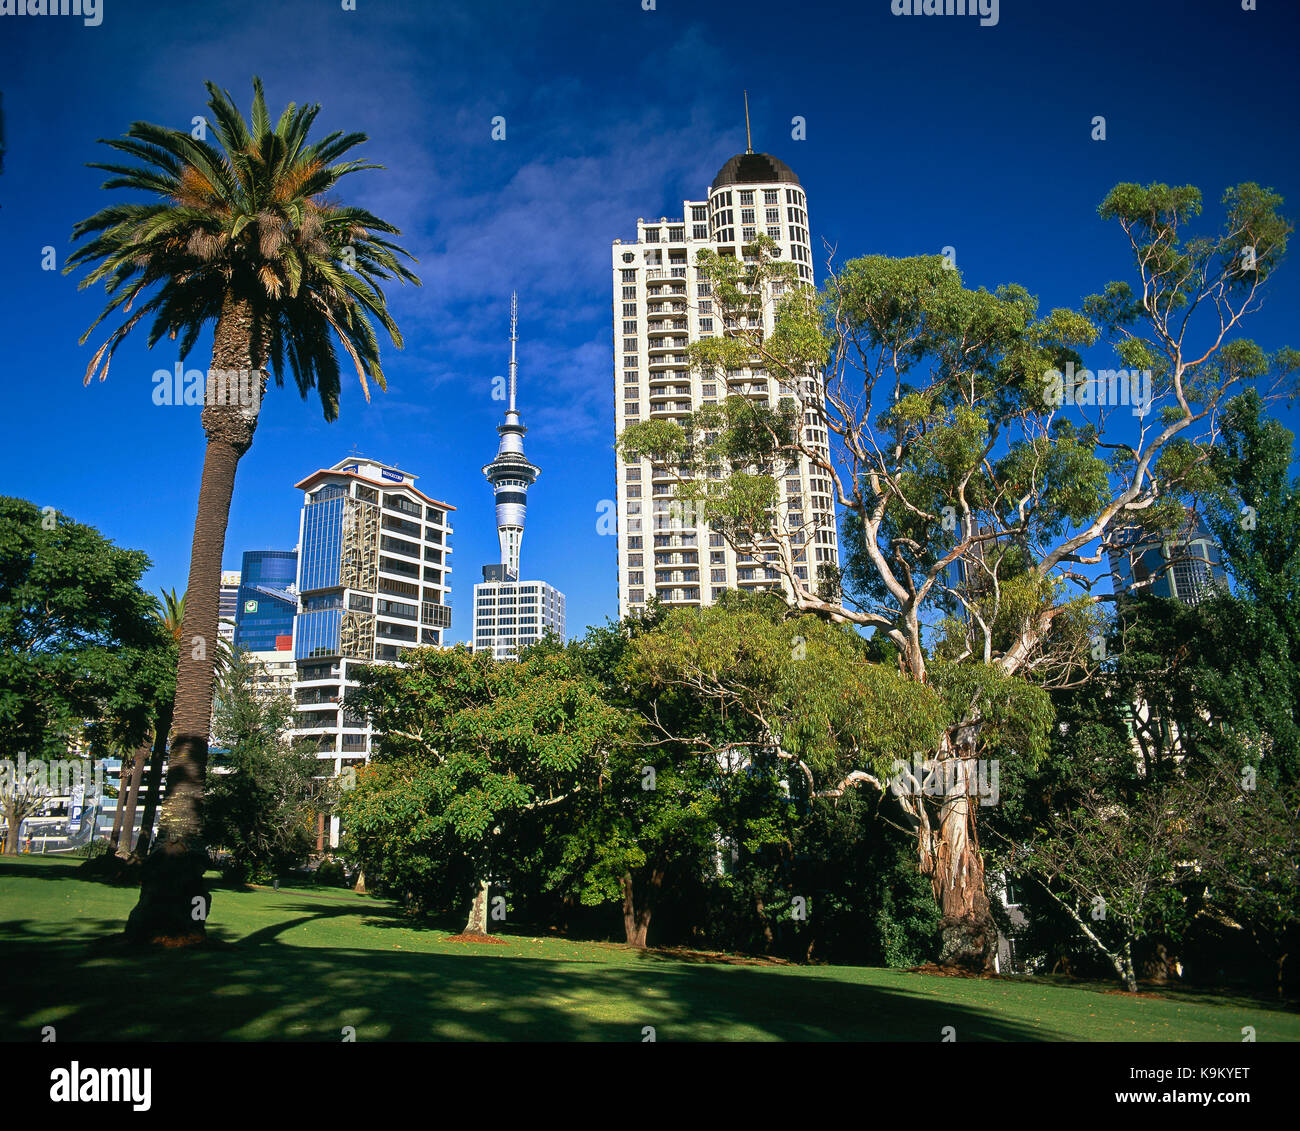 New Zealand. Auckland. Low angle view of city buildings from Myers Park. - Stock Image